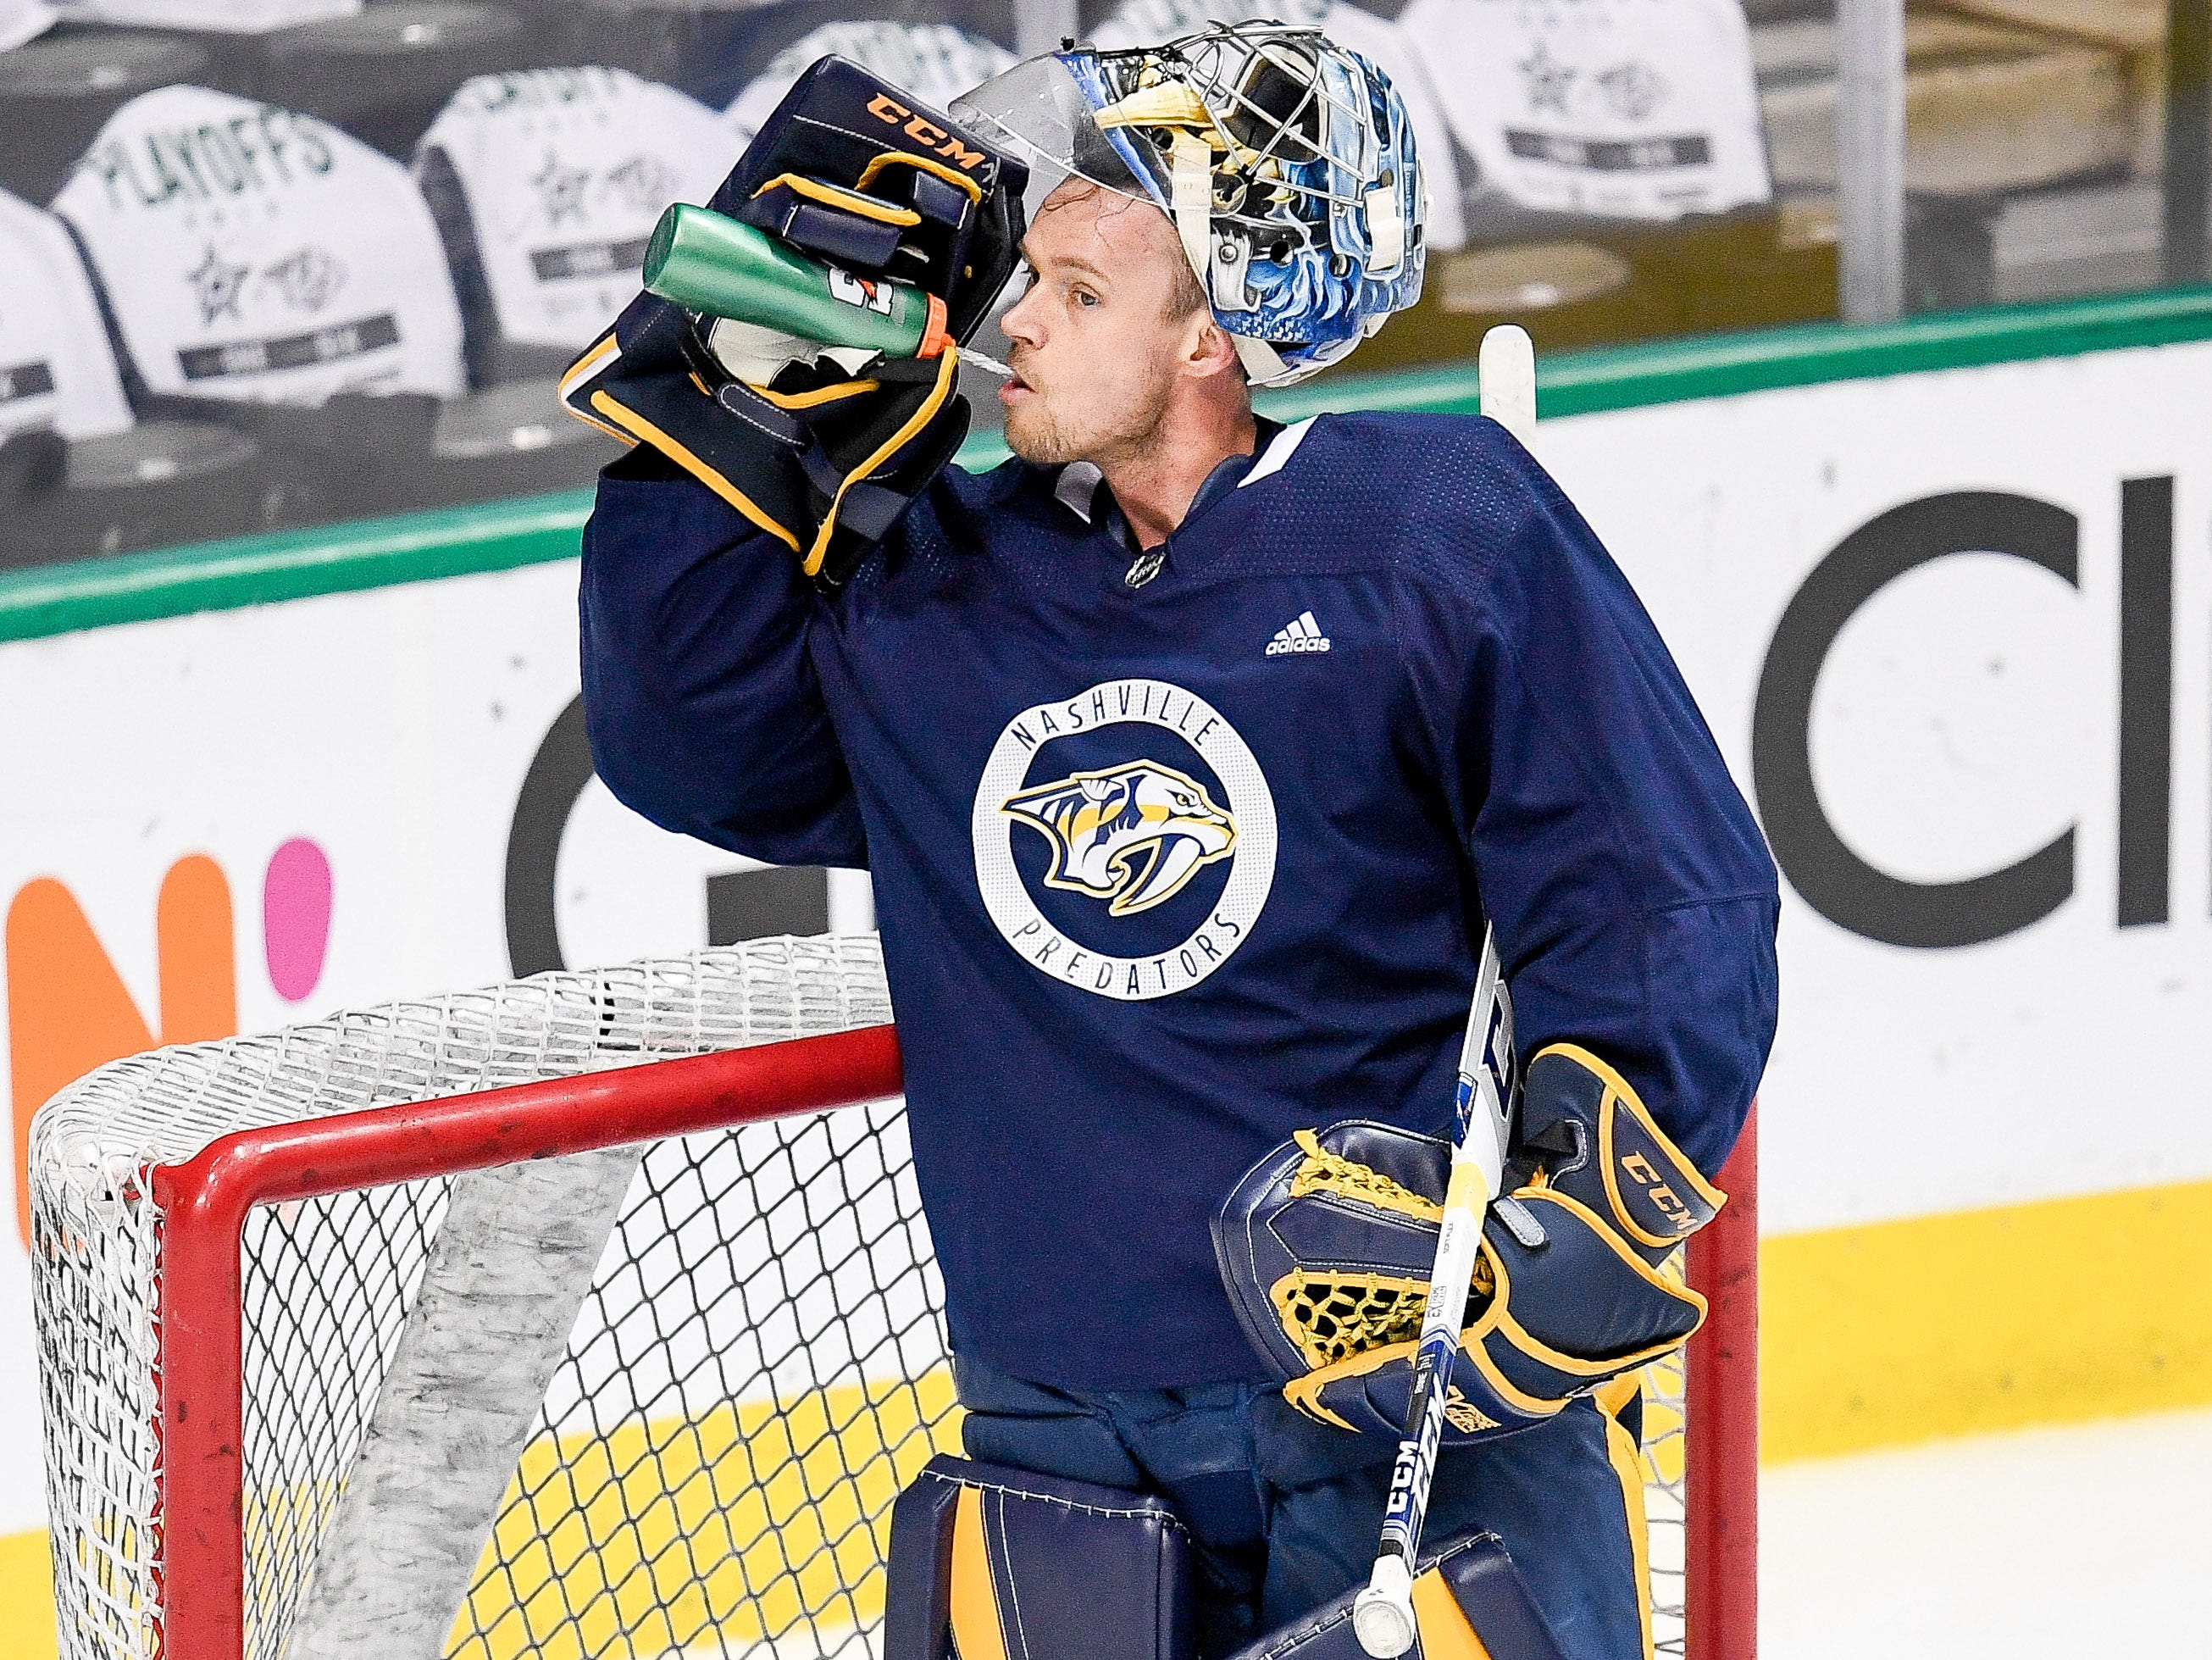 Nashville Predators goaltender Pekka Rinne (35) during practice before the divisional semifinal game against the Dallas Stars at the American Airlines Center in Dallas, Texas, Monday, April 22, 2019.